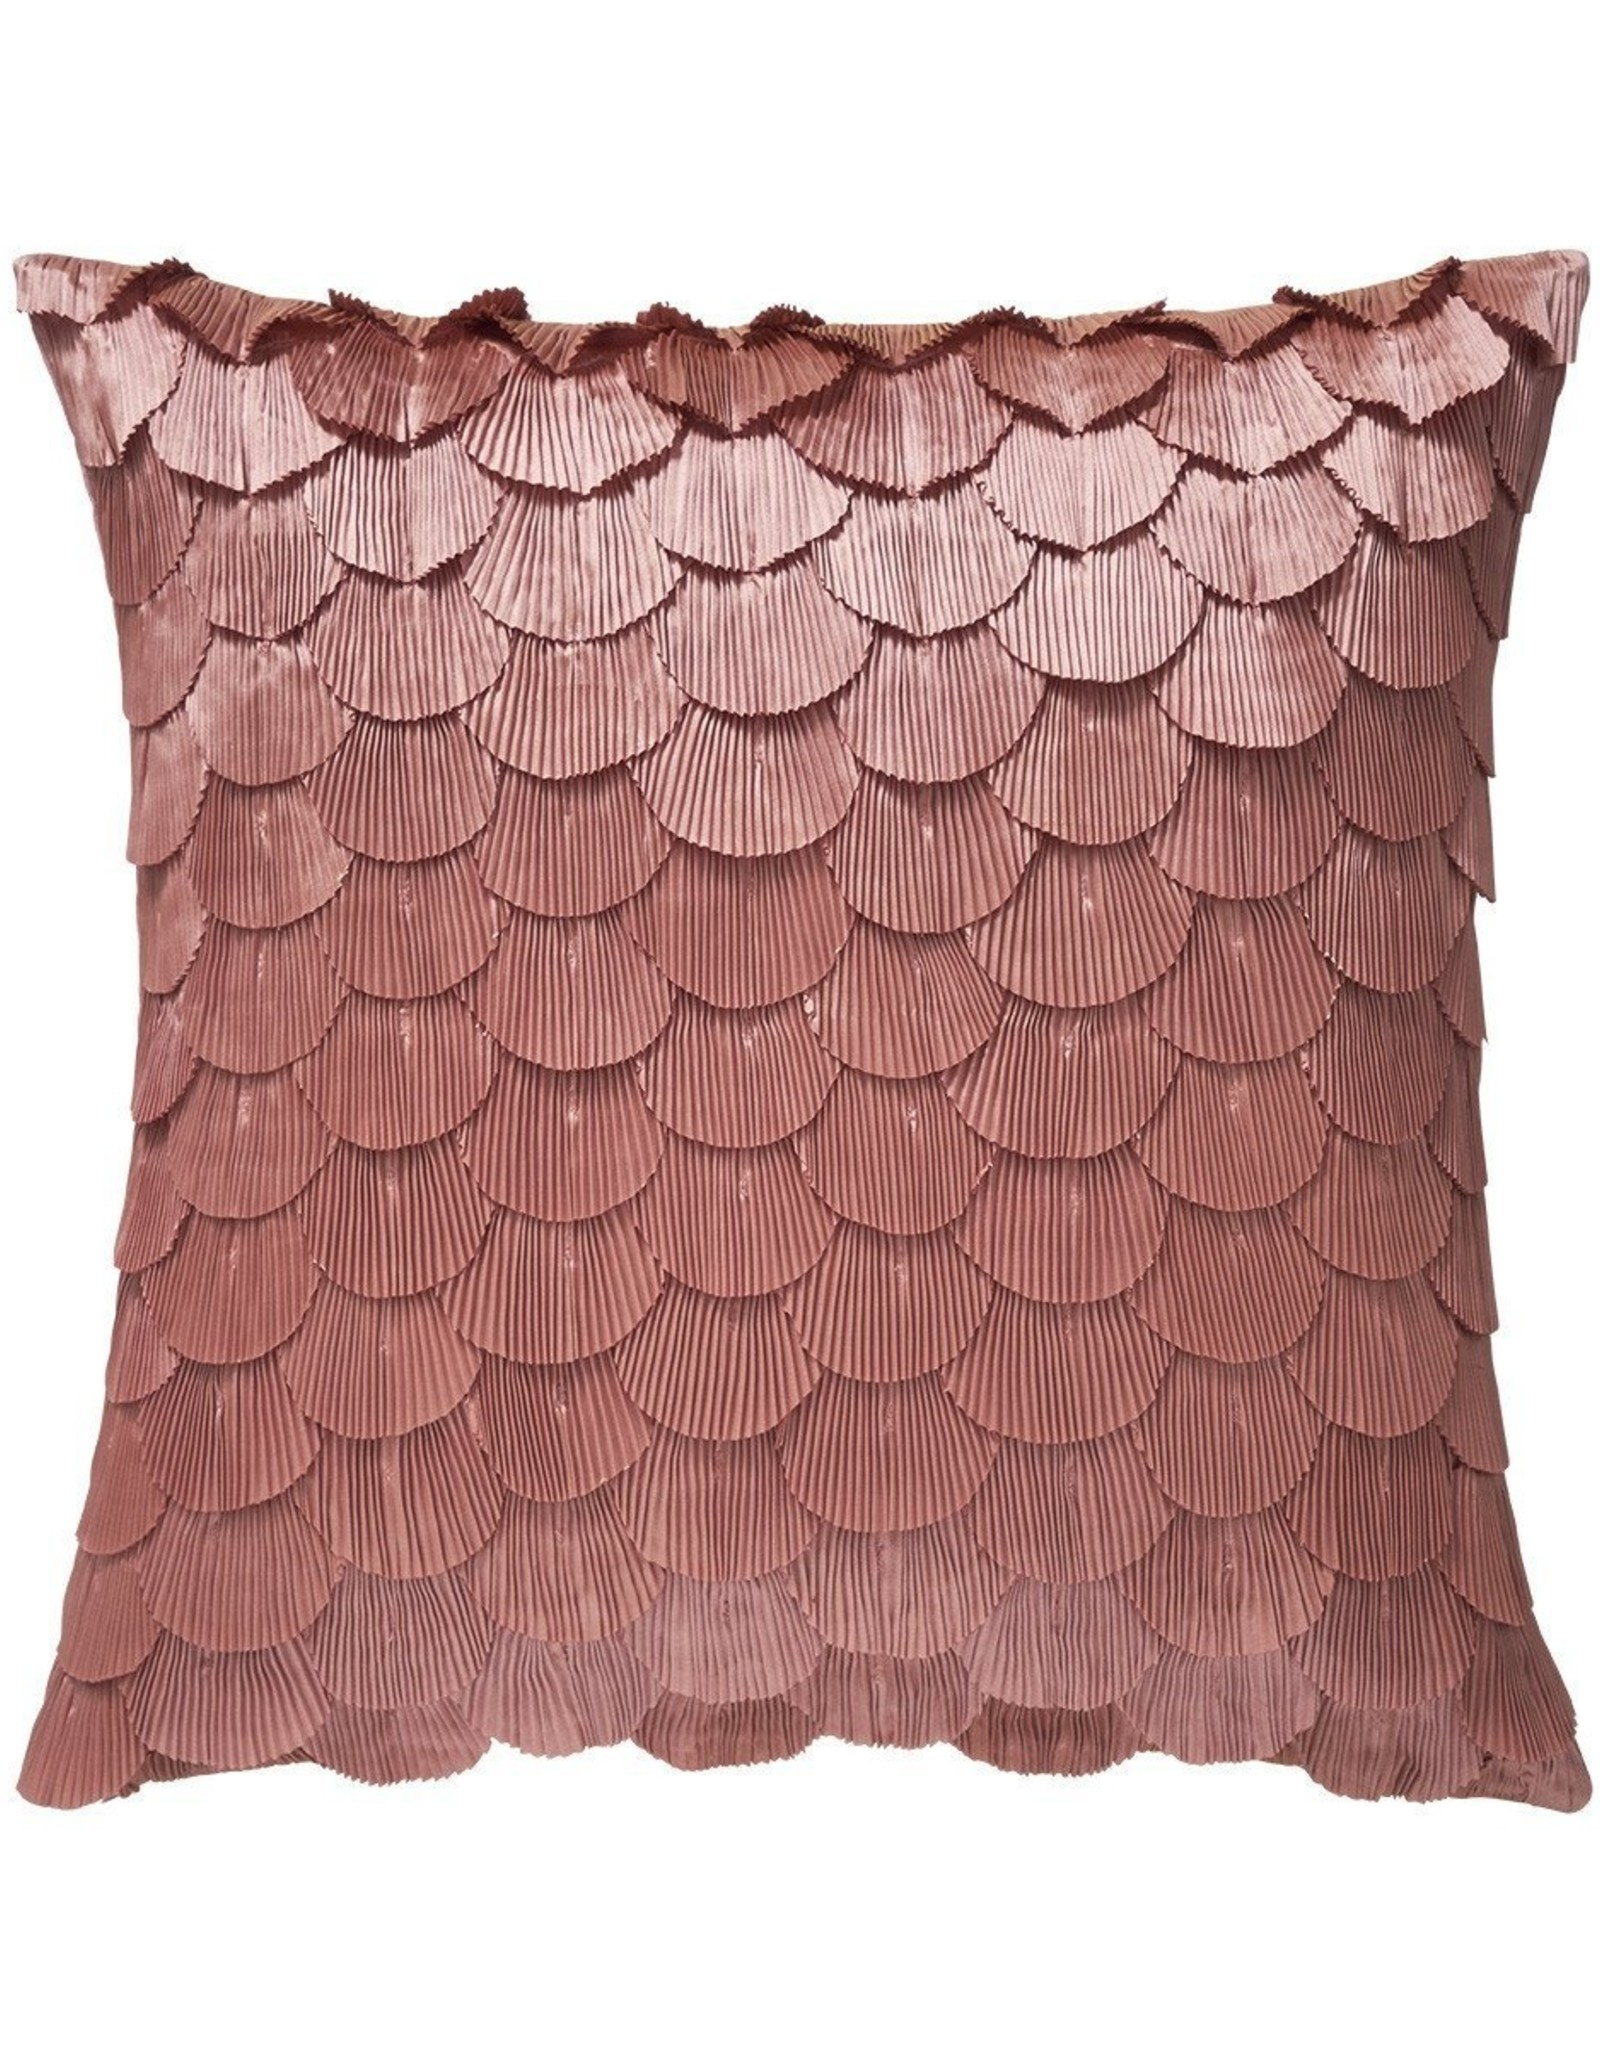 Yves Delorme Ombelle Decorative Pillows